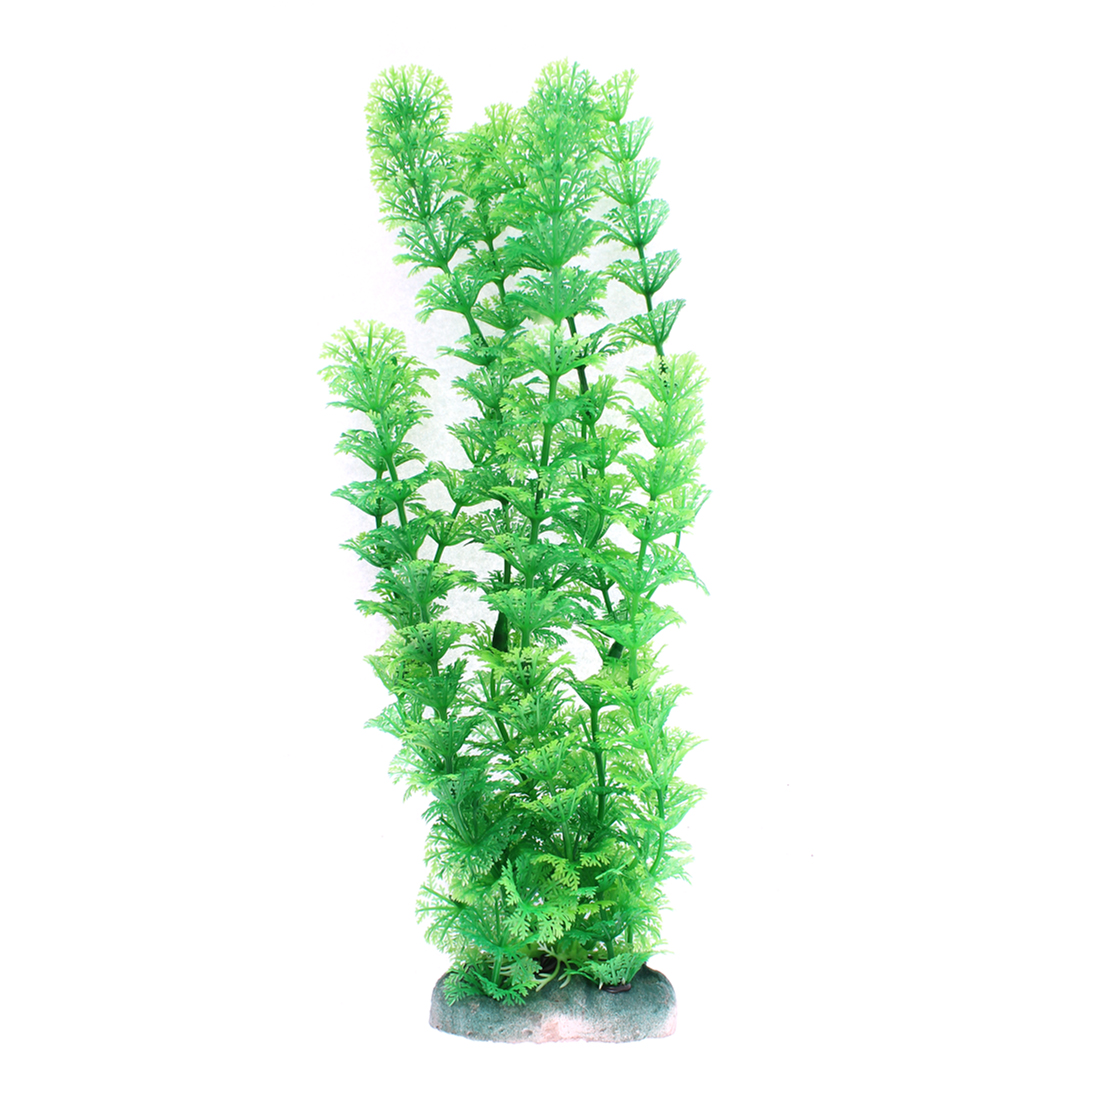 Imitated Plastic Water Plant Grass Landscape Green for Fish Tank Aquarium